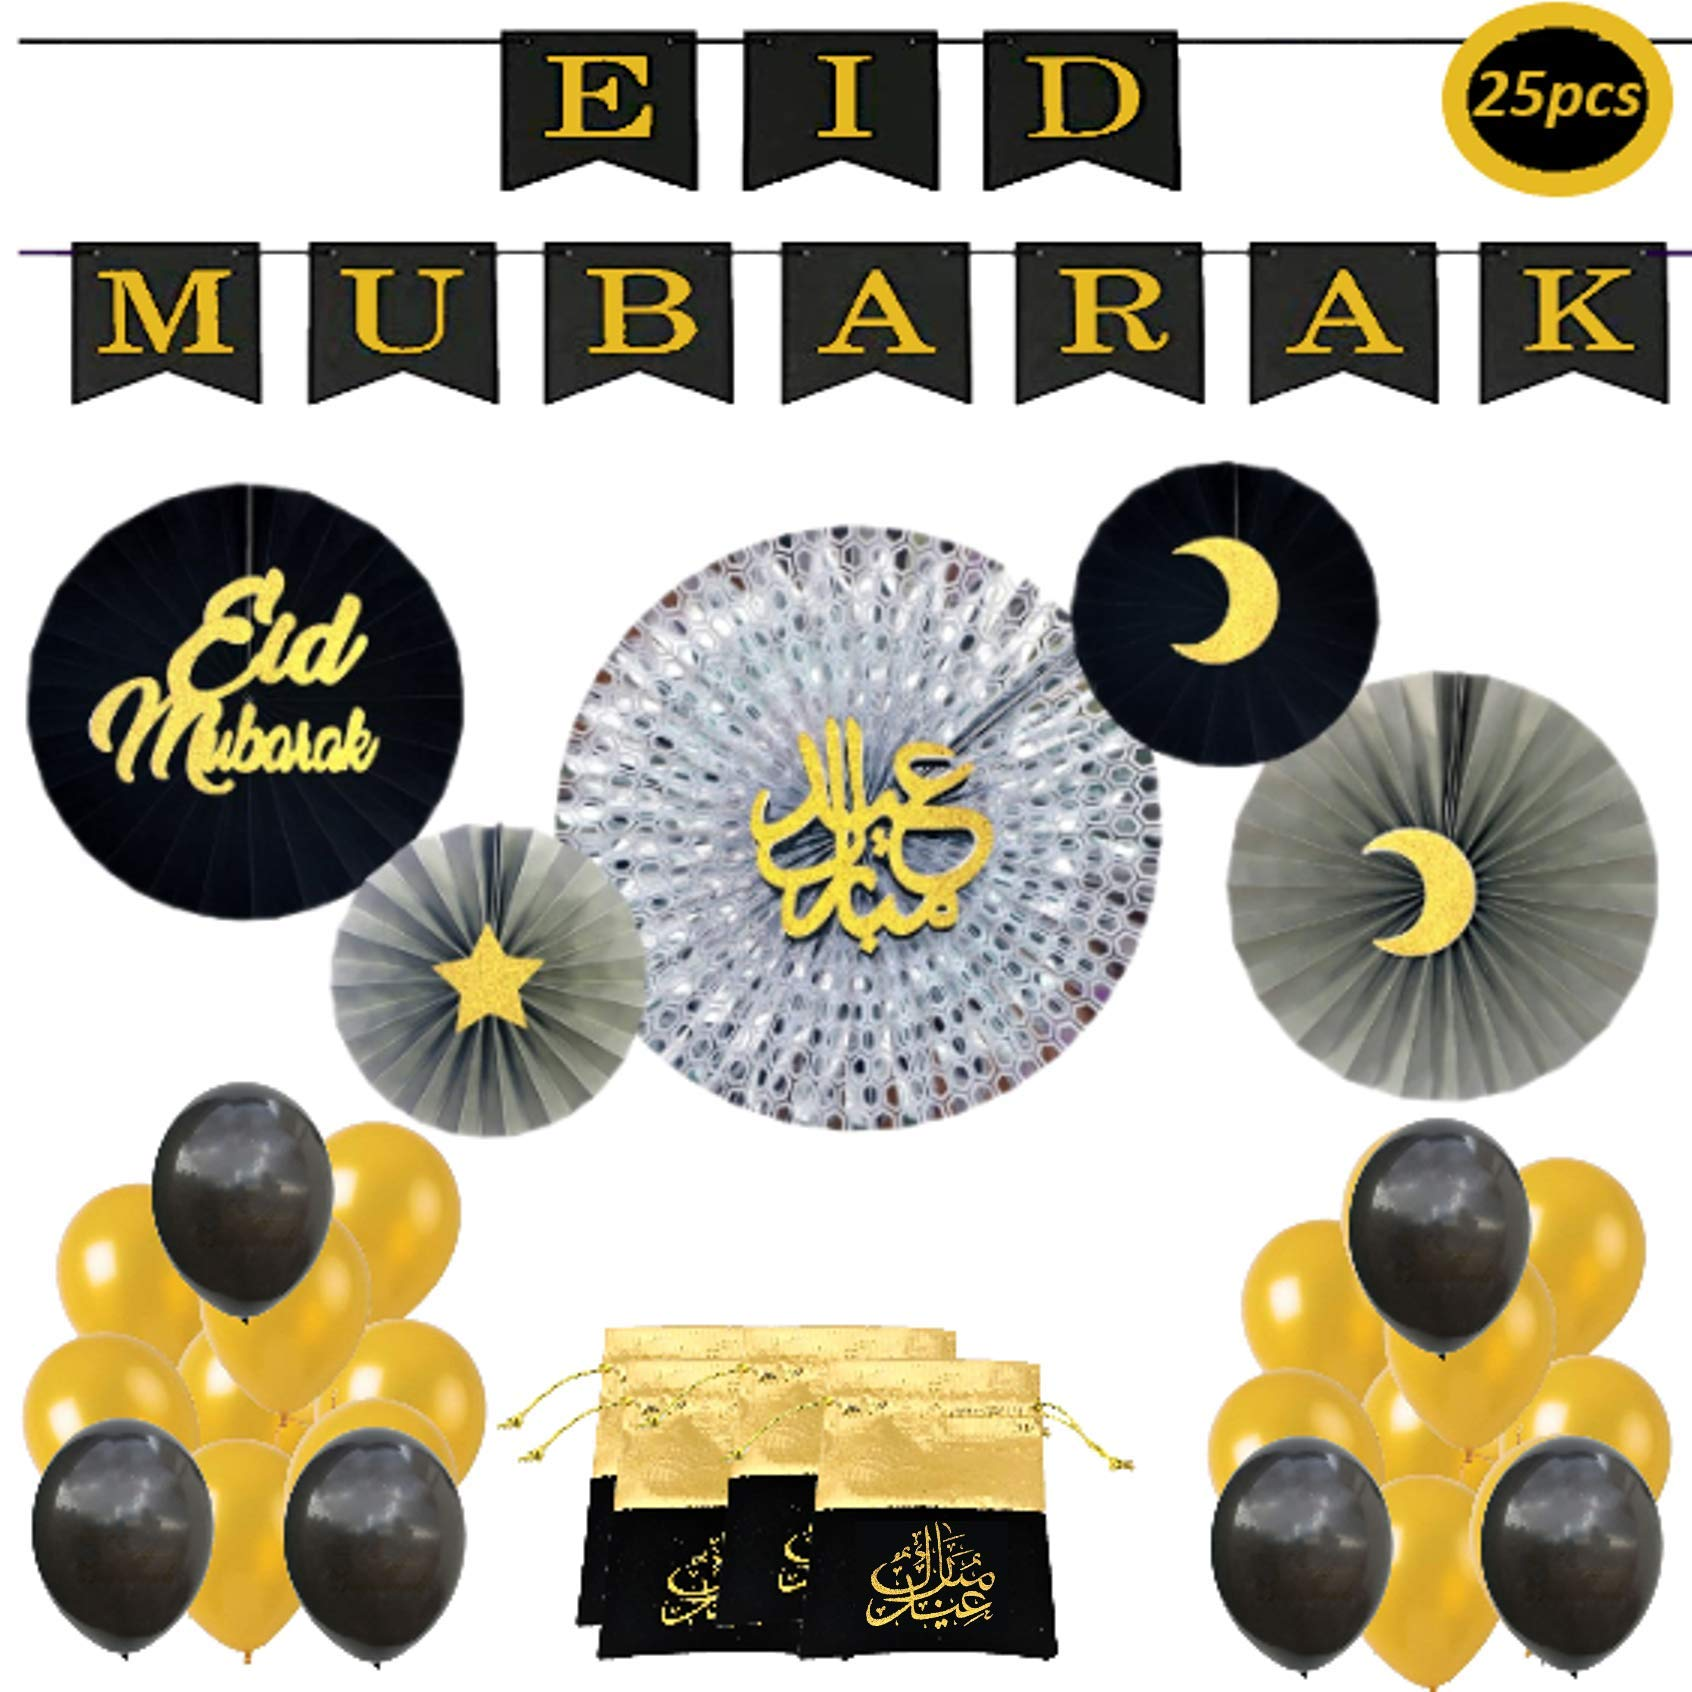 Exclusive 25 Pack Eid Mubarak Decorations Banner, Paper Fans, Goodie Bags & Balloons (Black & Gold)